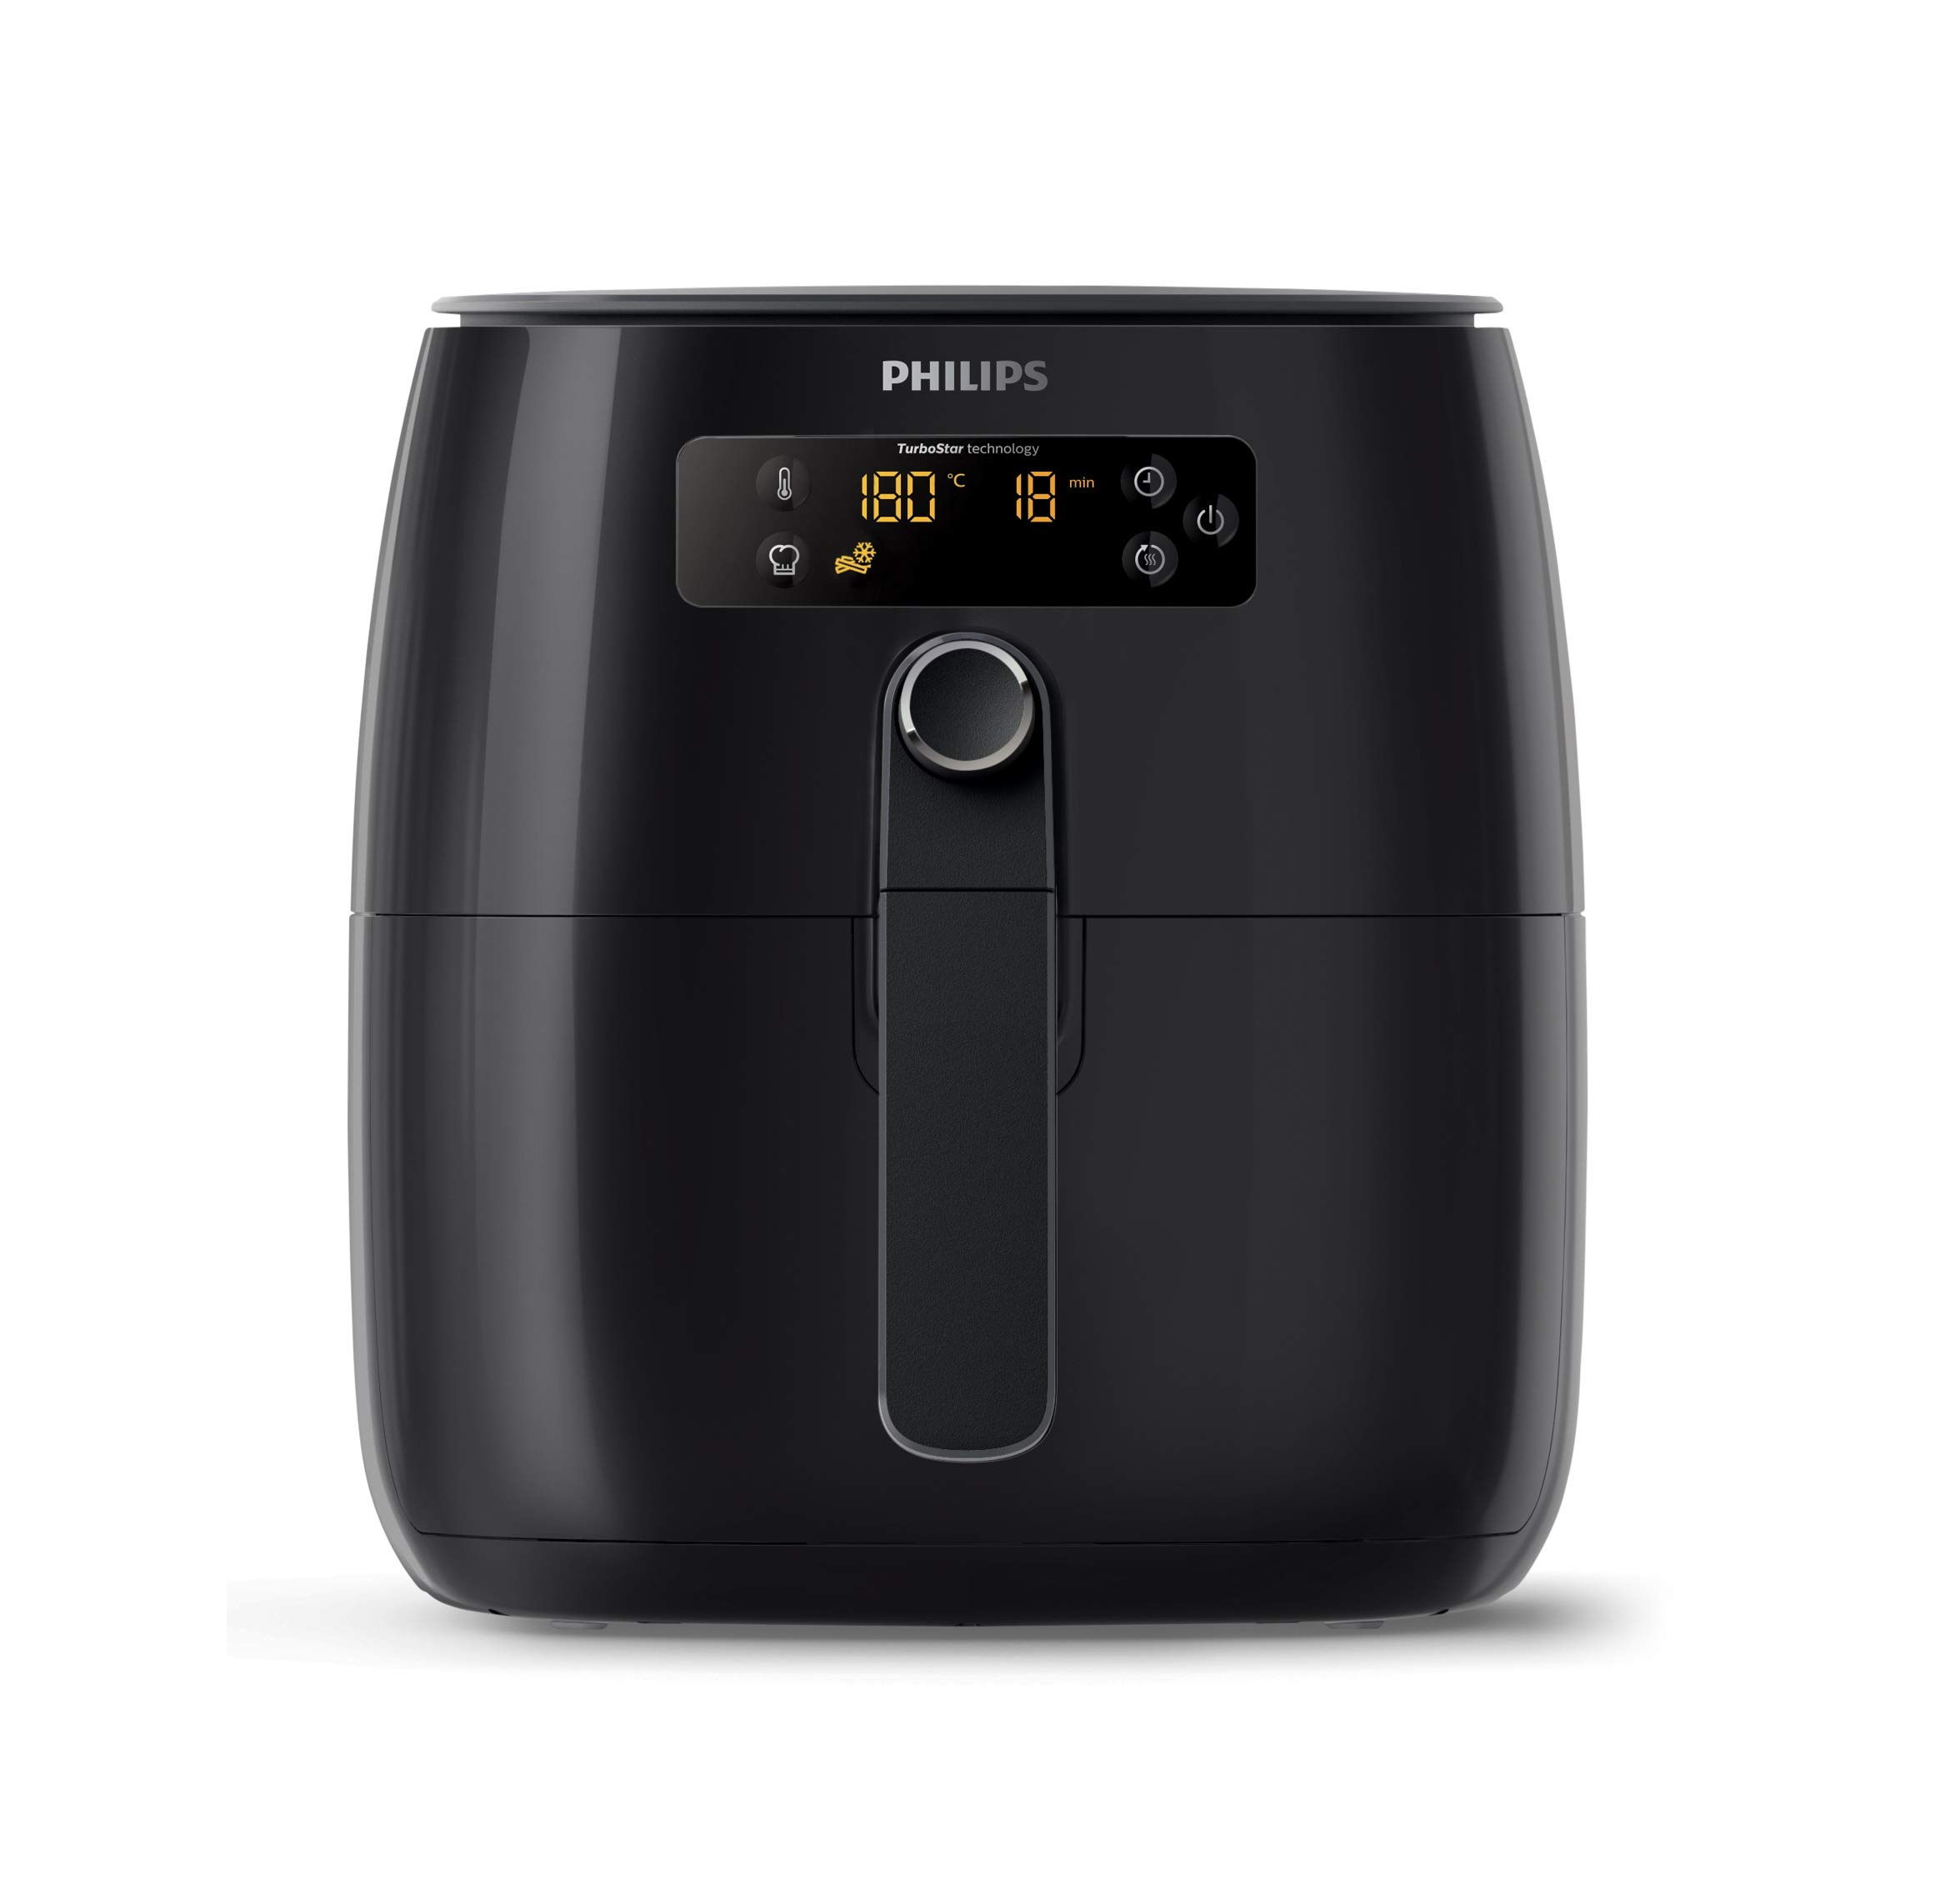 Philips TurboStar Technology Airfryer, Digital Interface, 1.8lb/2.75qt- HD9641/96 by PHILIPS